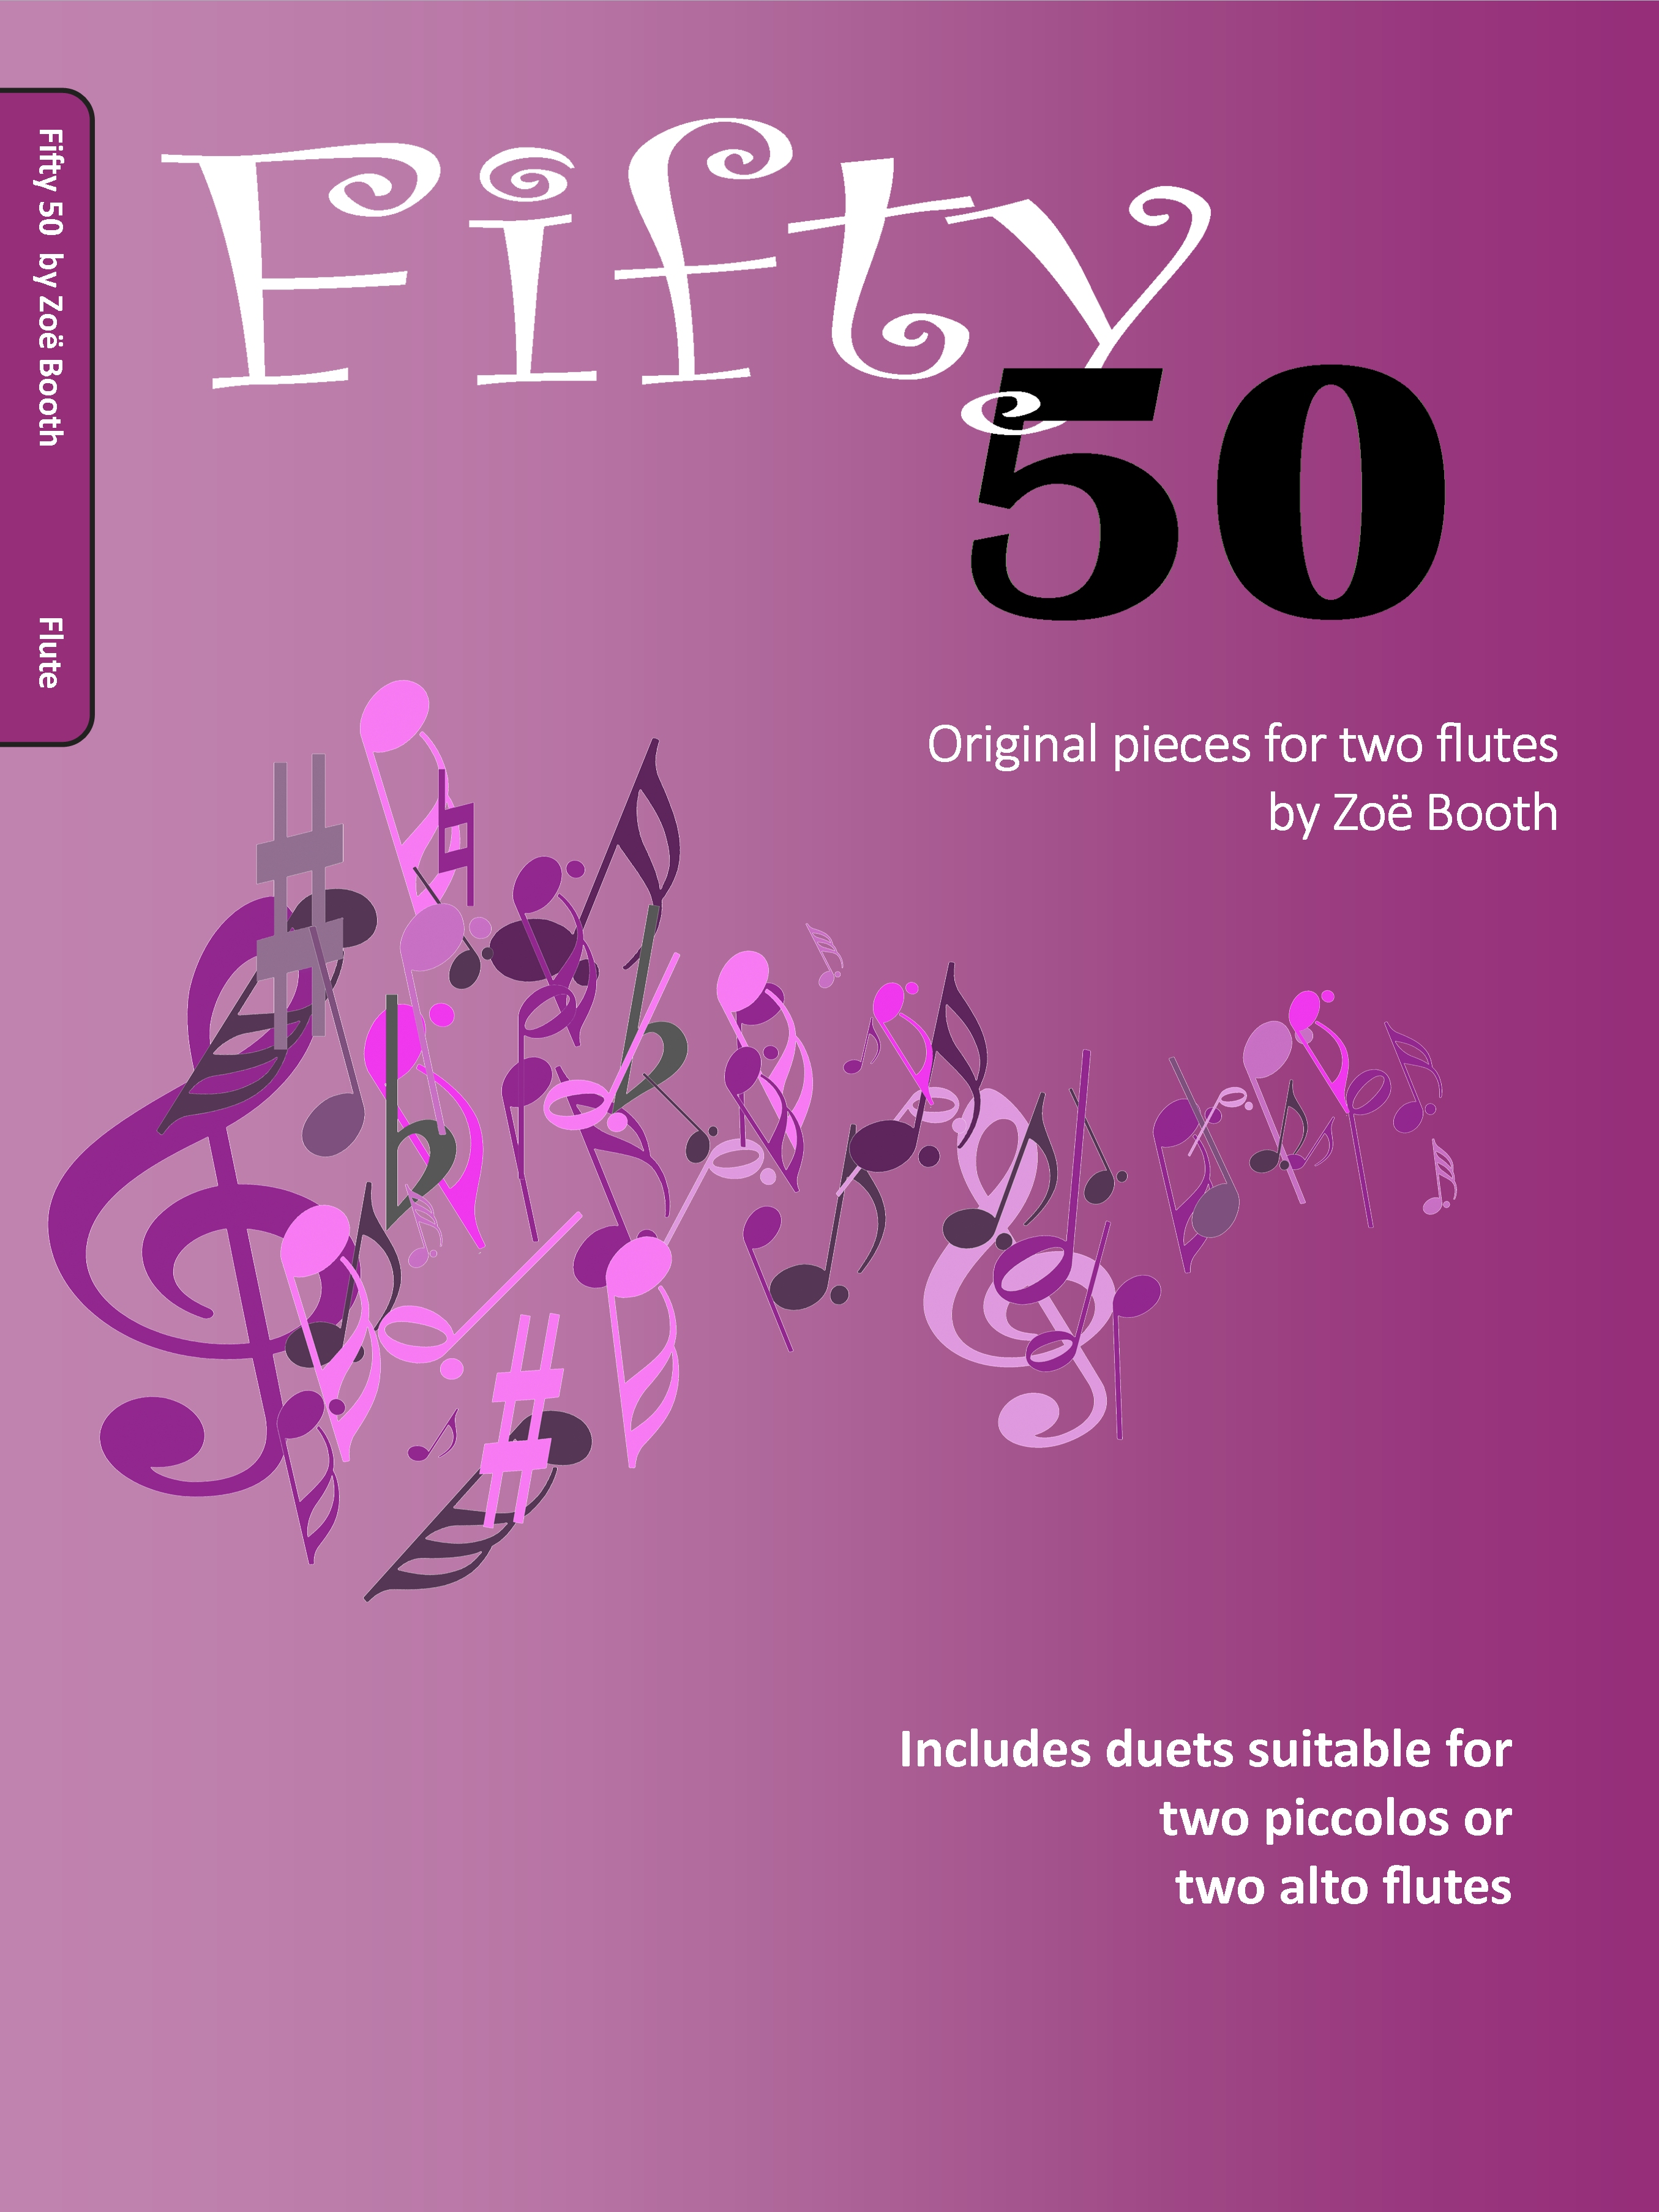 Fifty 50 - Original Pieces for two flutes  by Zoë Booth